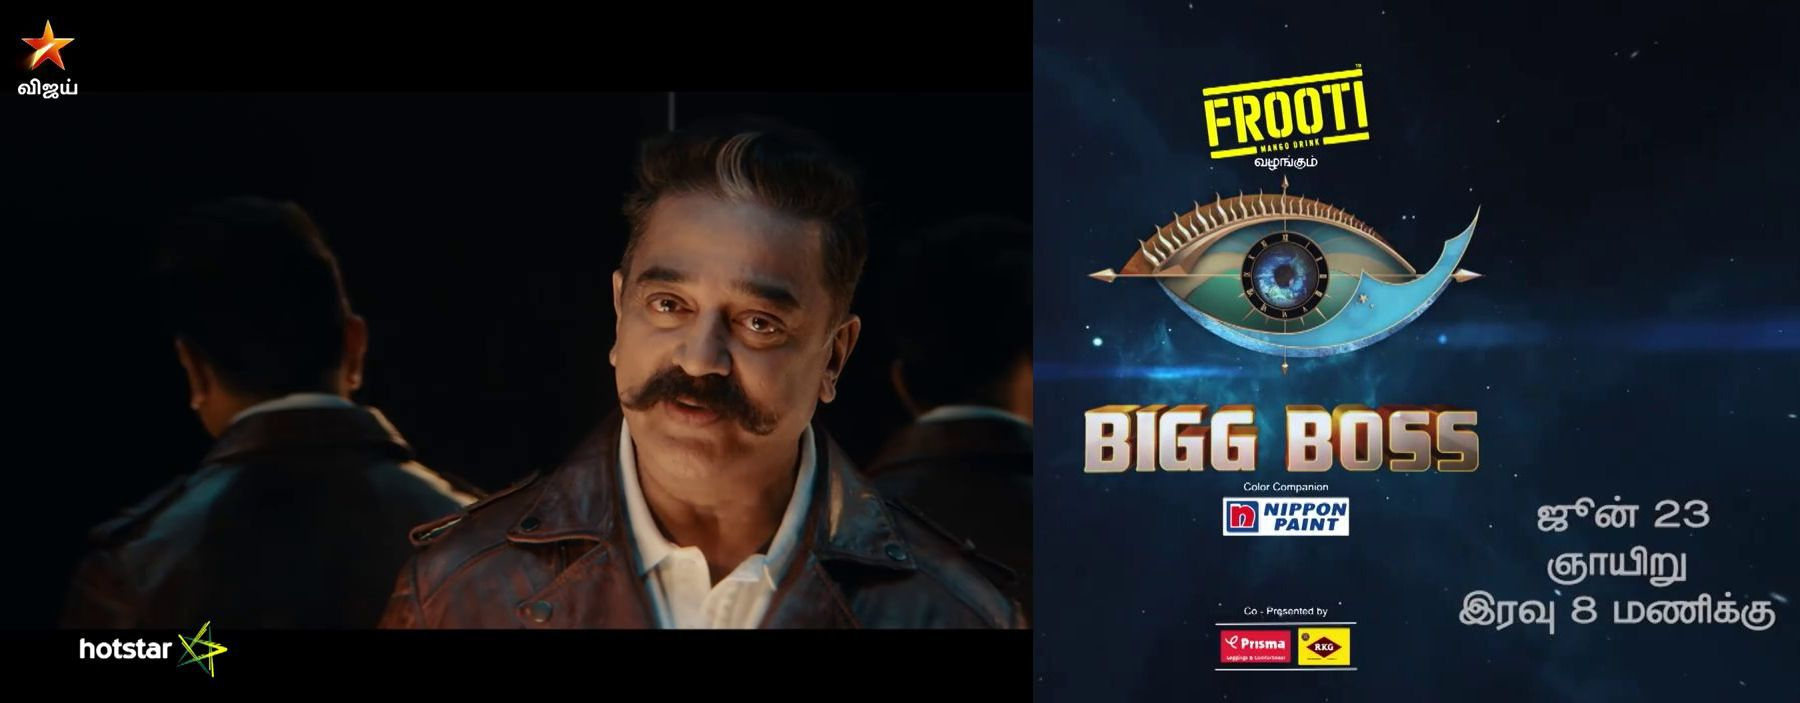 Vijay Tv Bigg Boss 3 Launching On 23rd June 2019 At 8 00 P M